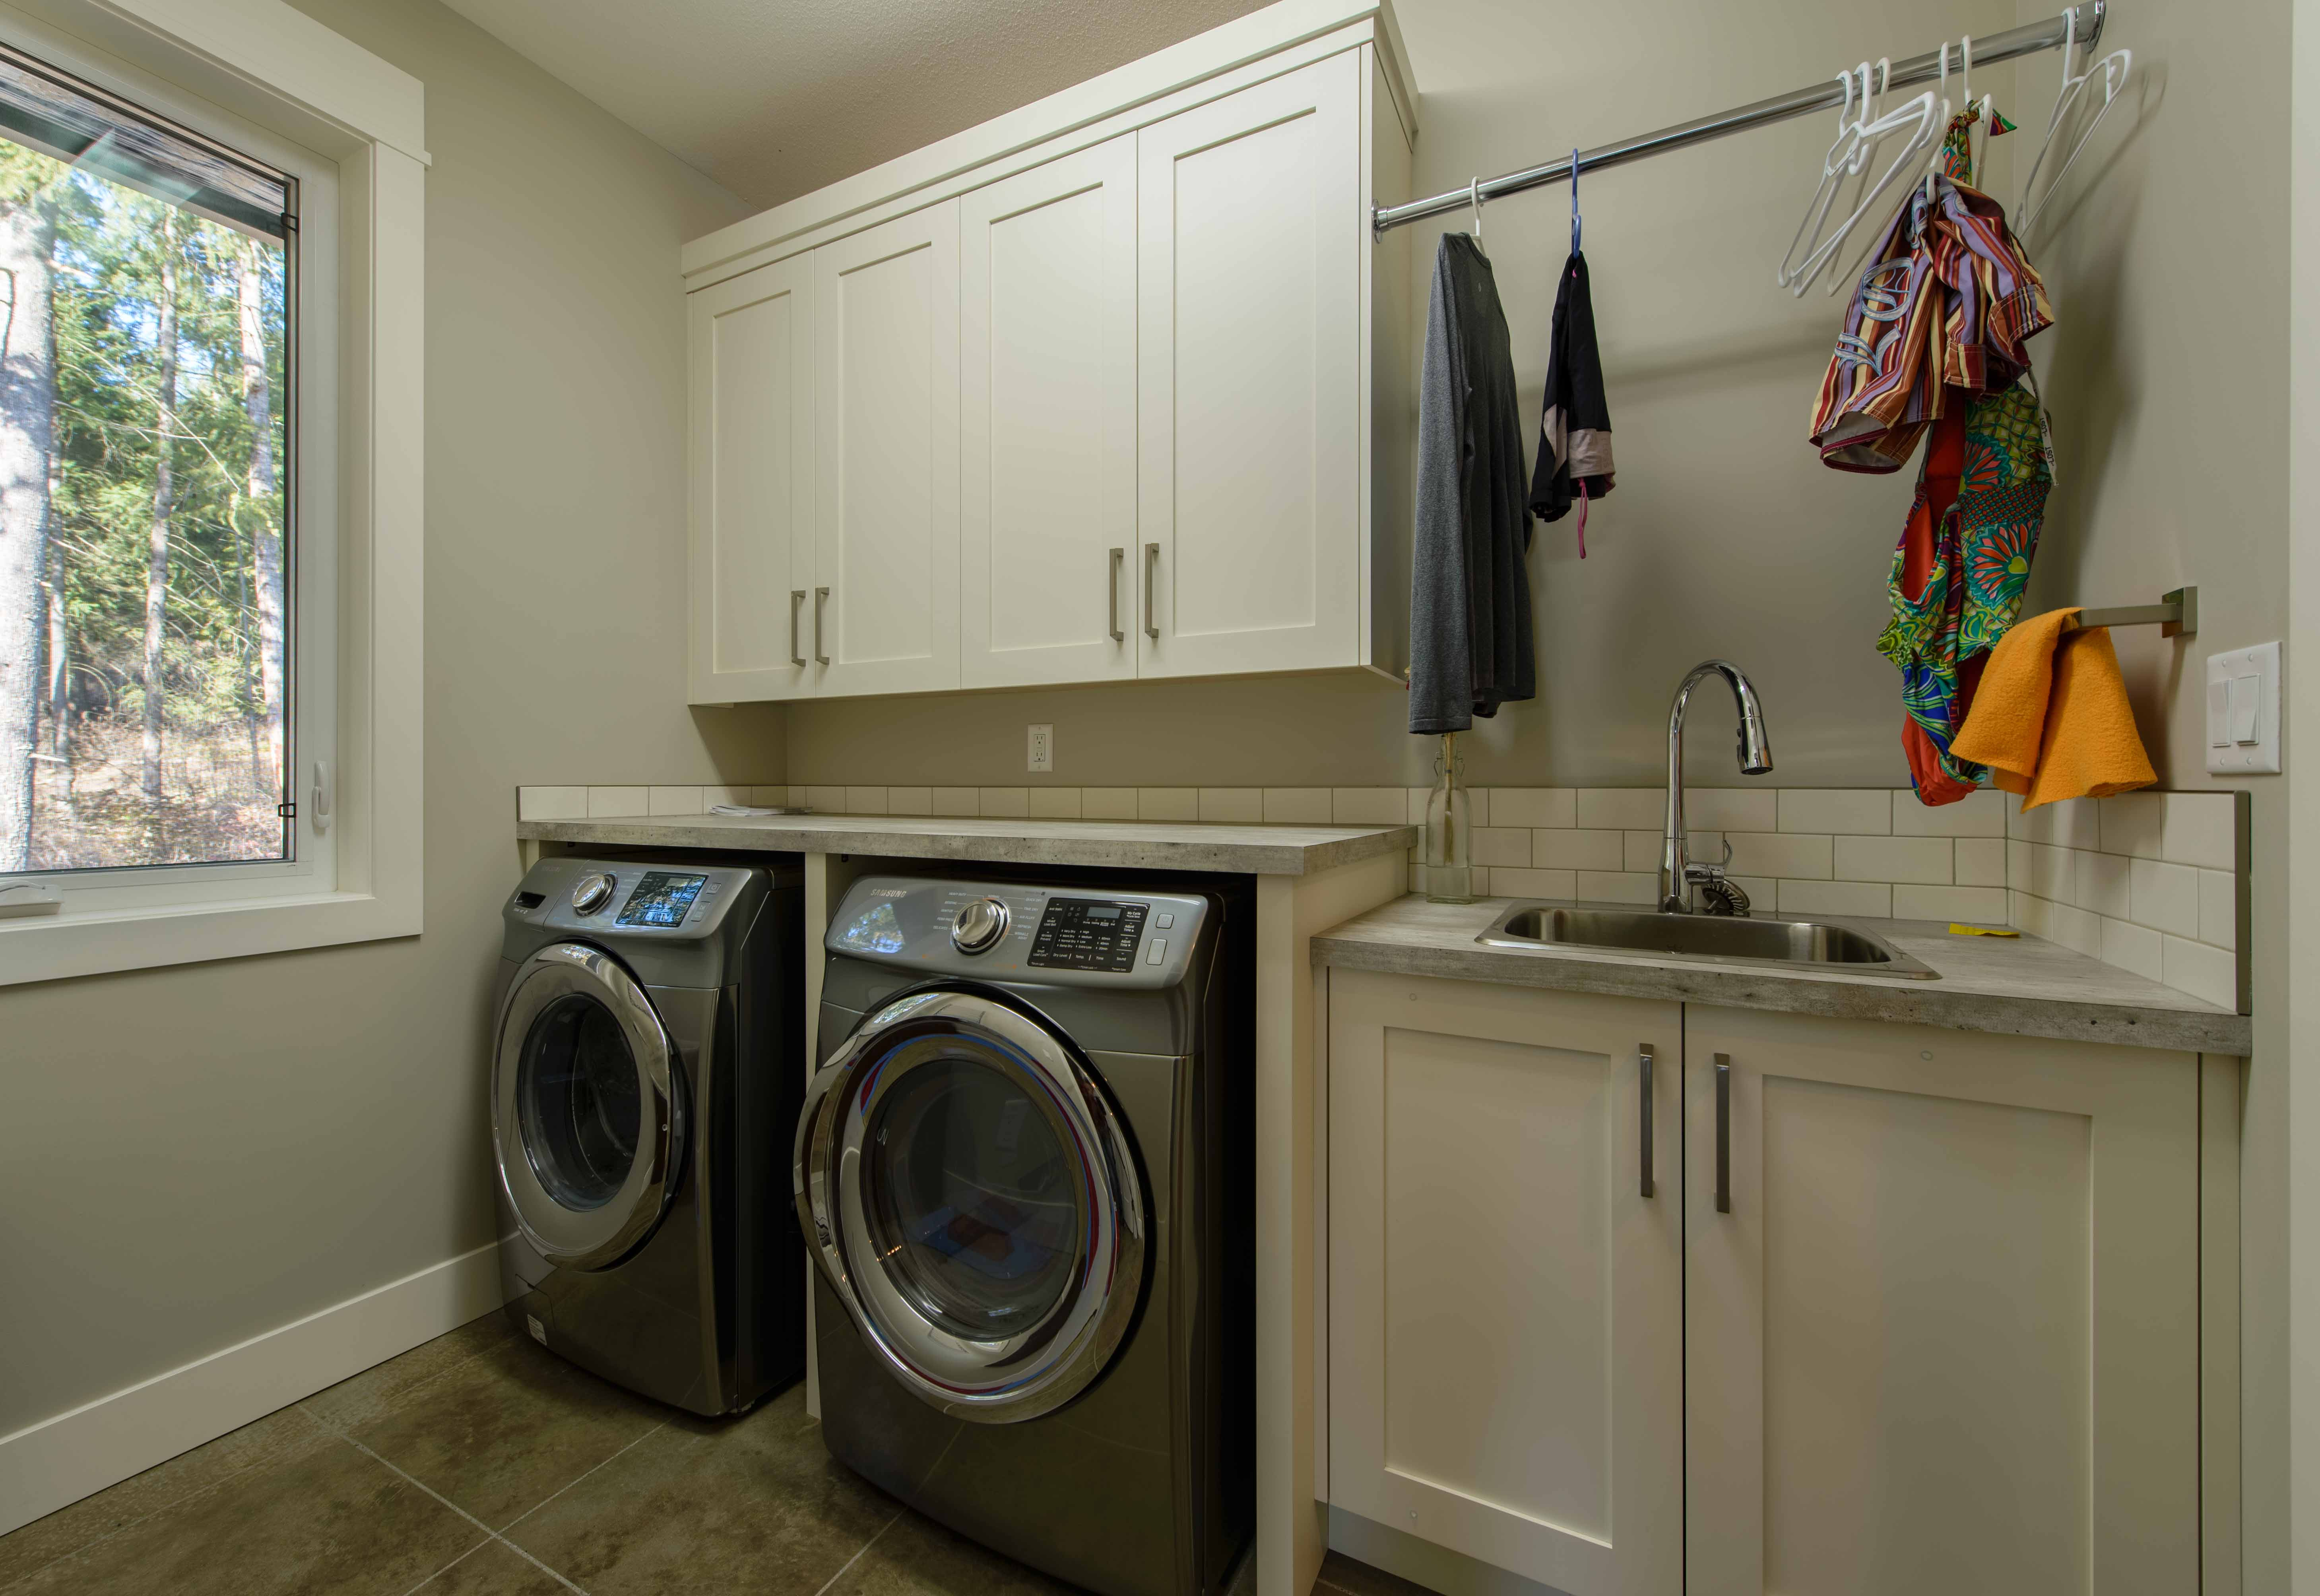 Laundry room cupboards & cabinetry